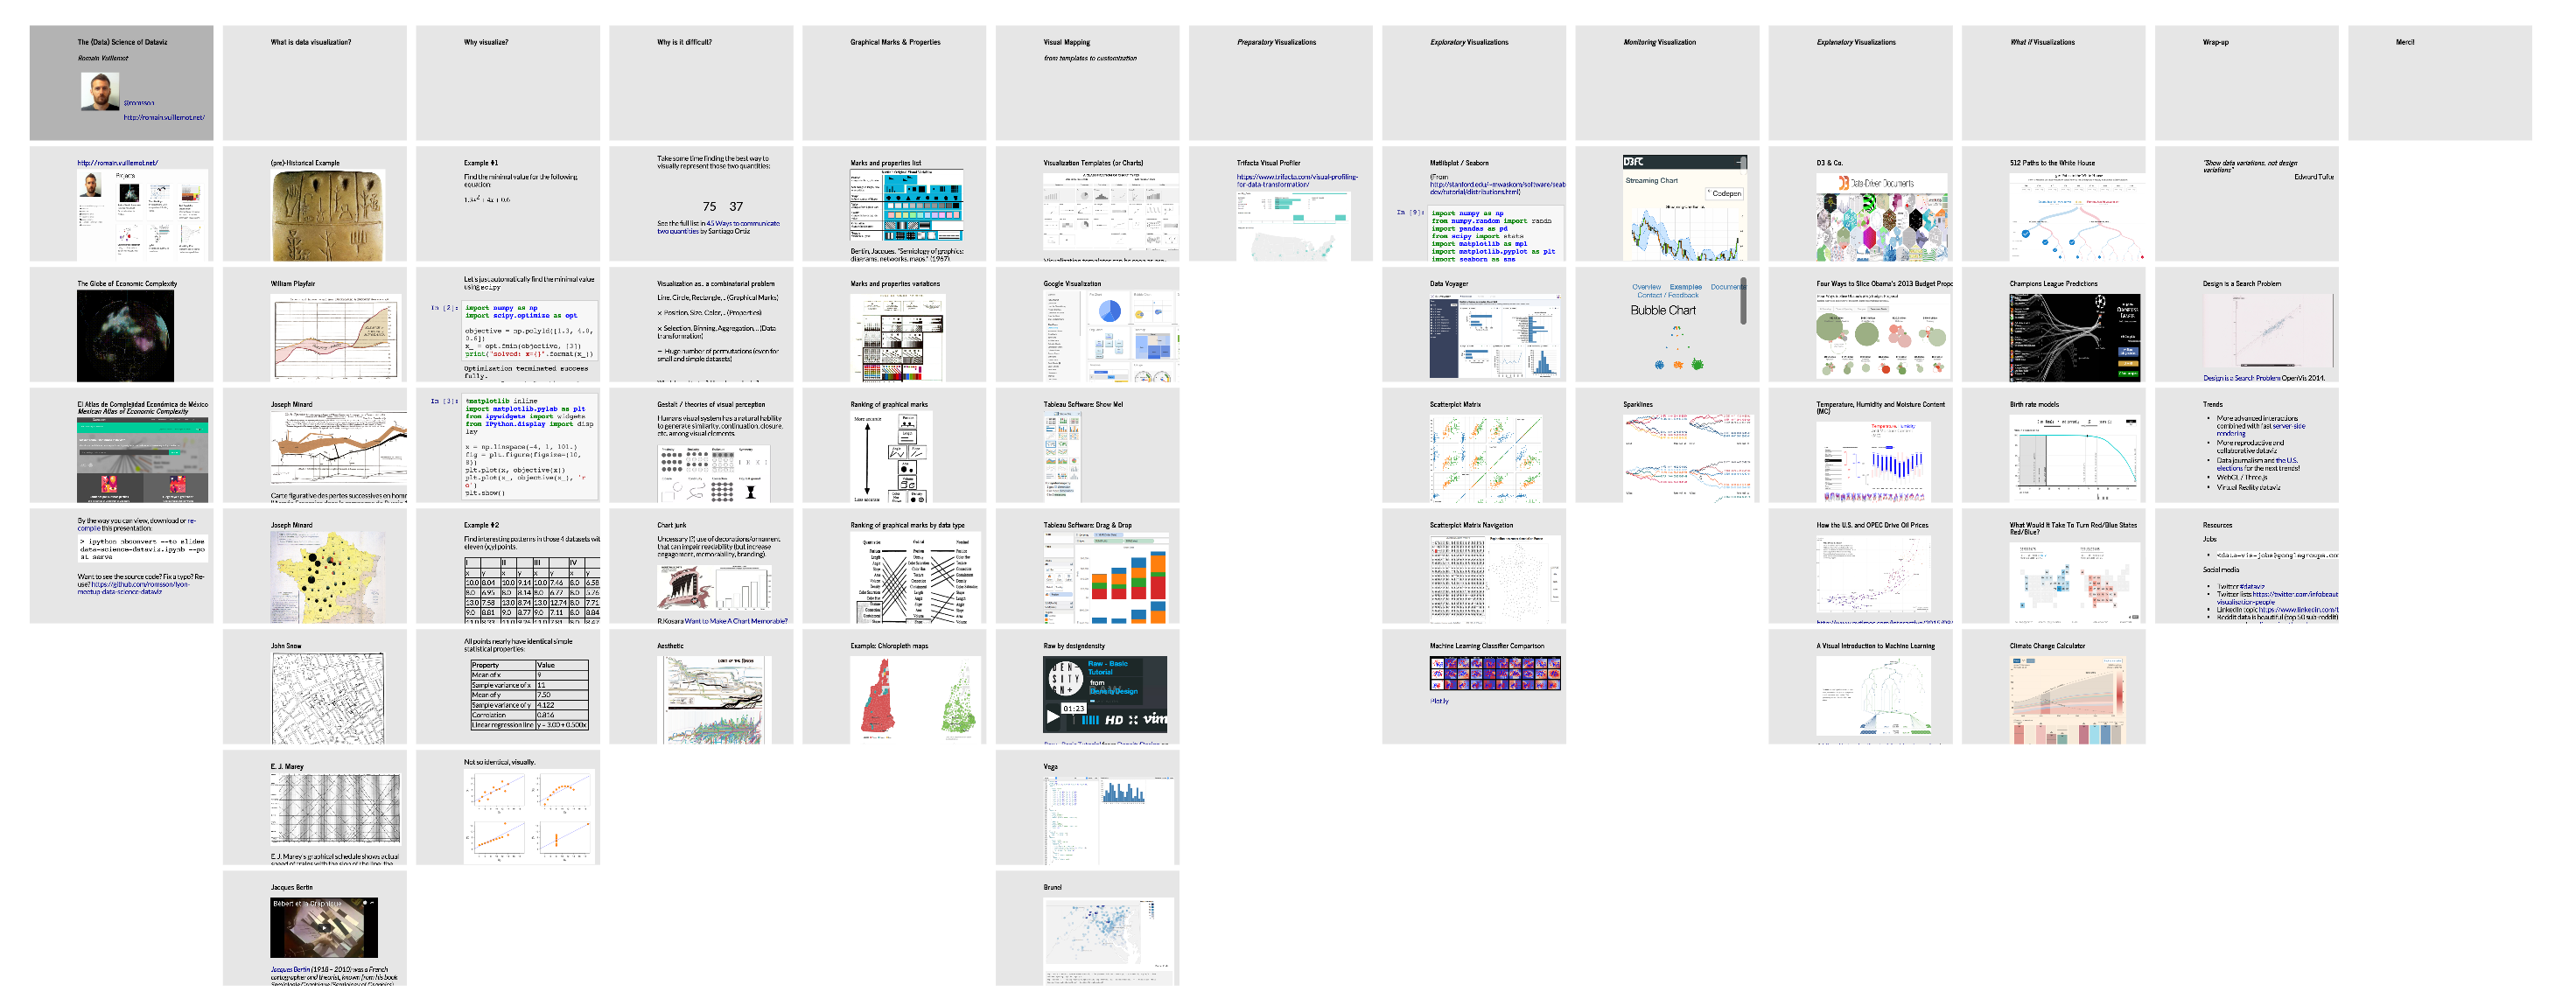 The Data Science of Dataviz feature image